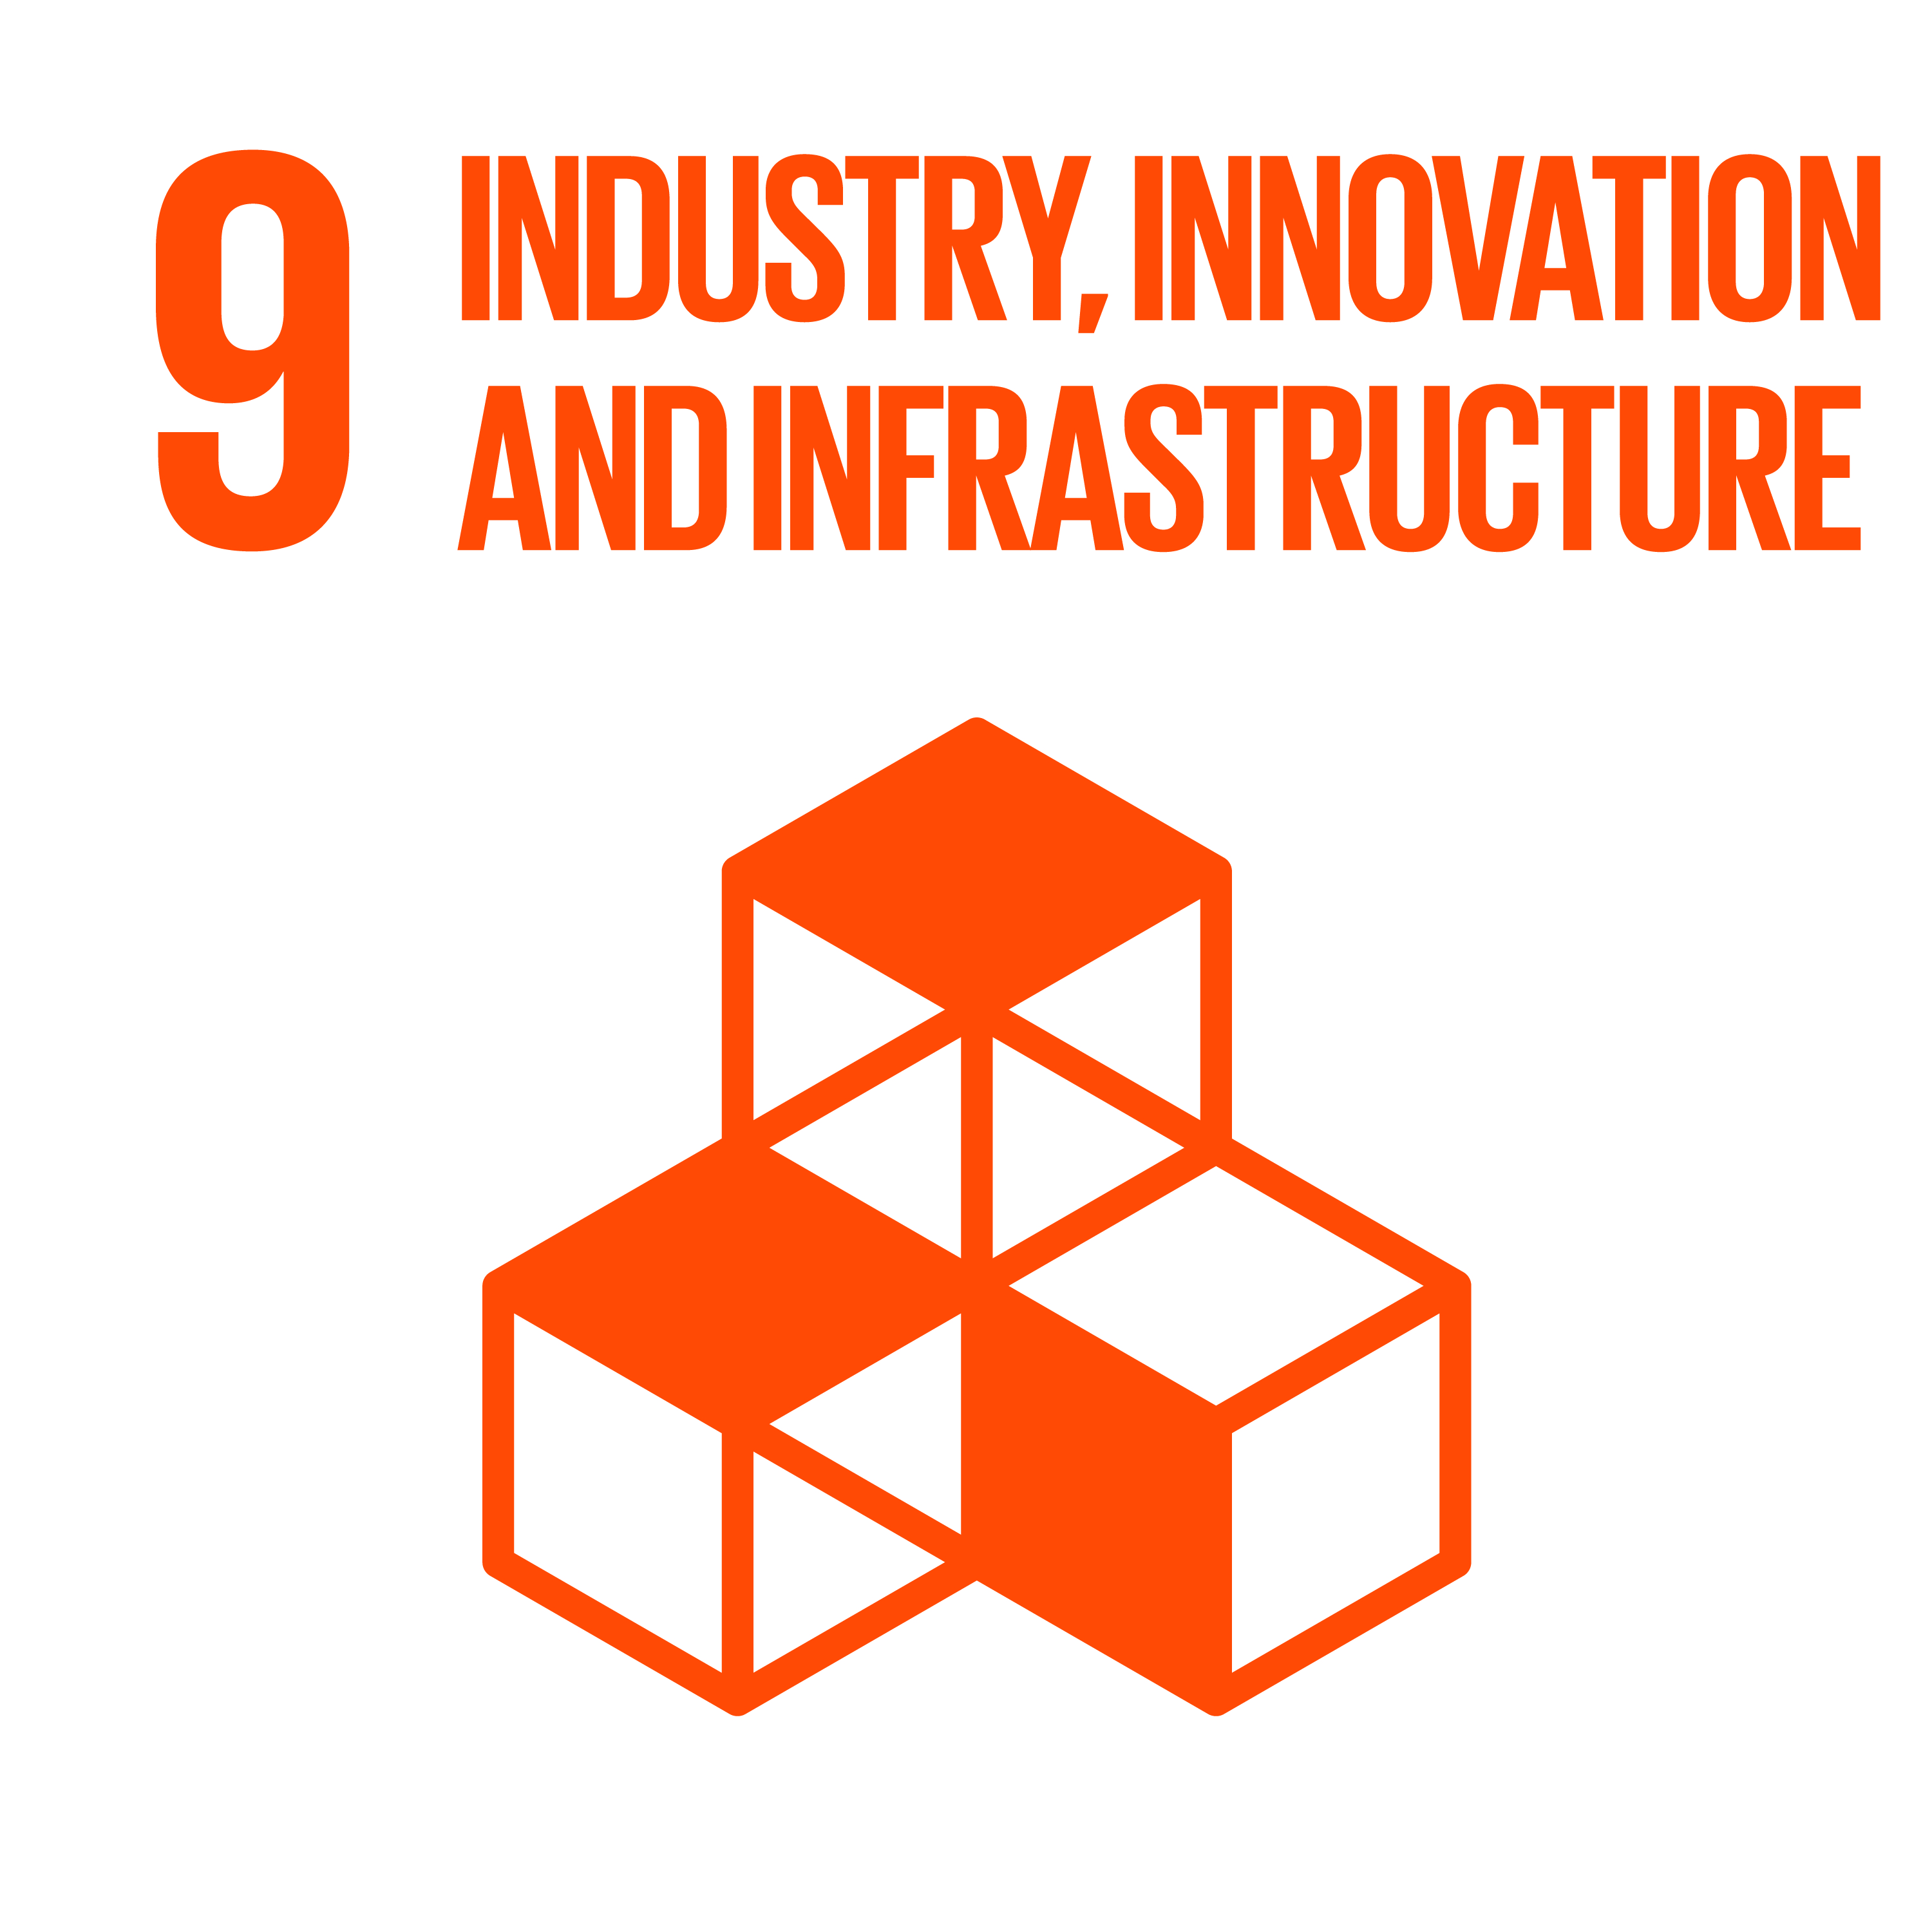 Sustainable development goals: Industry, innovation and infrastructure